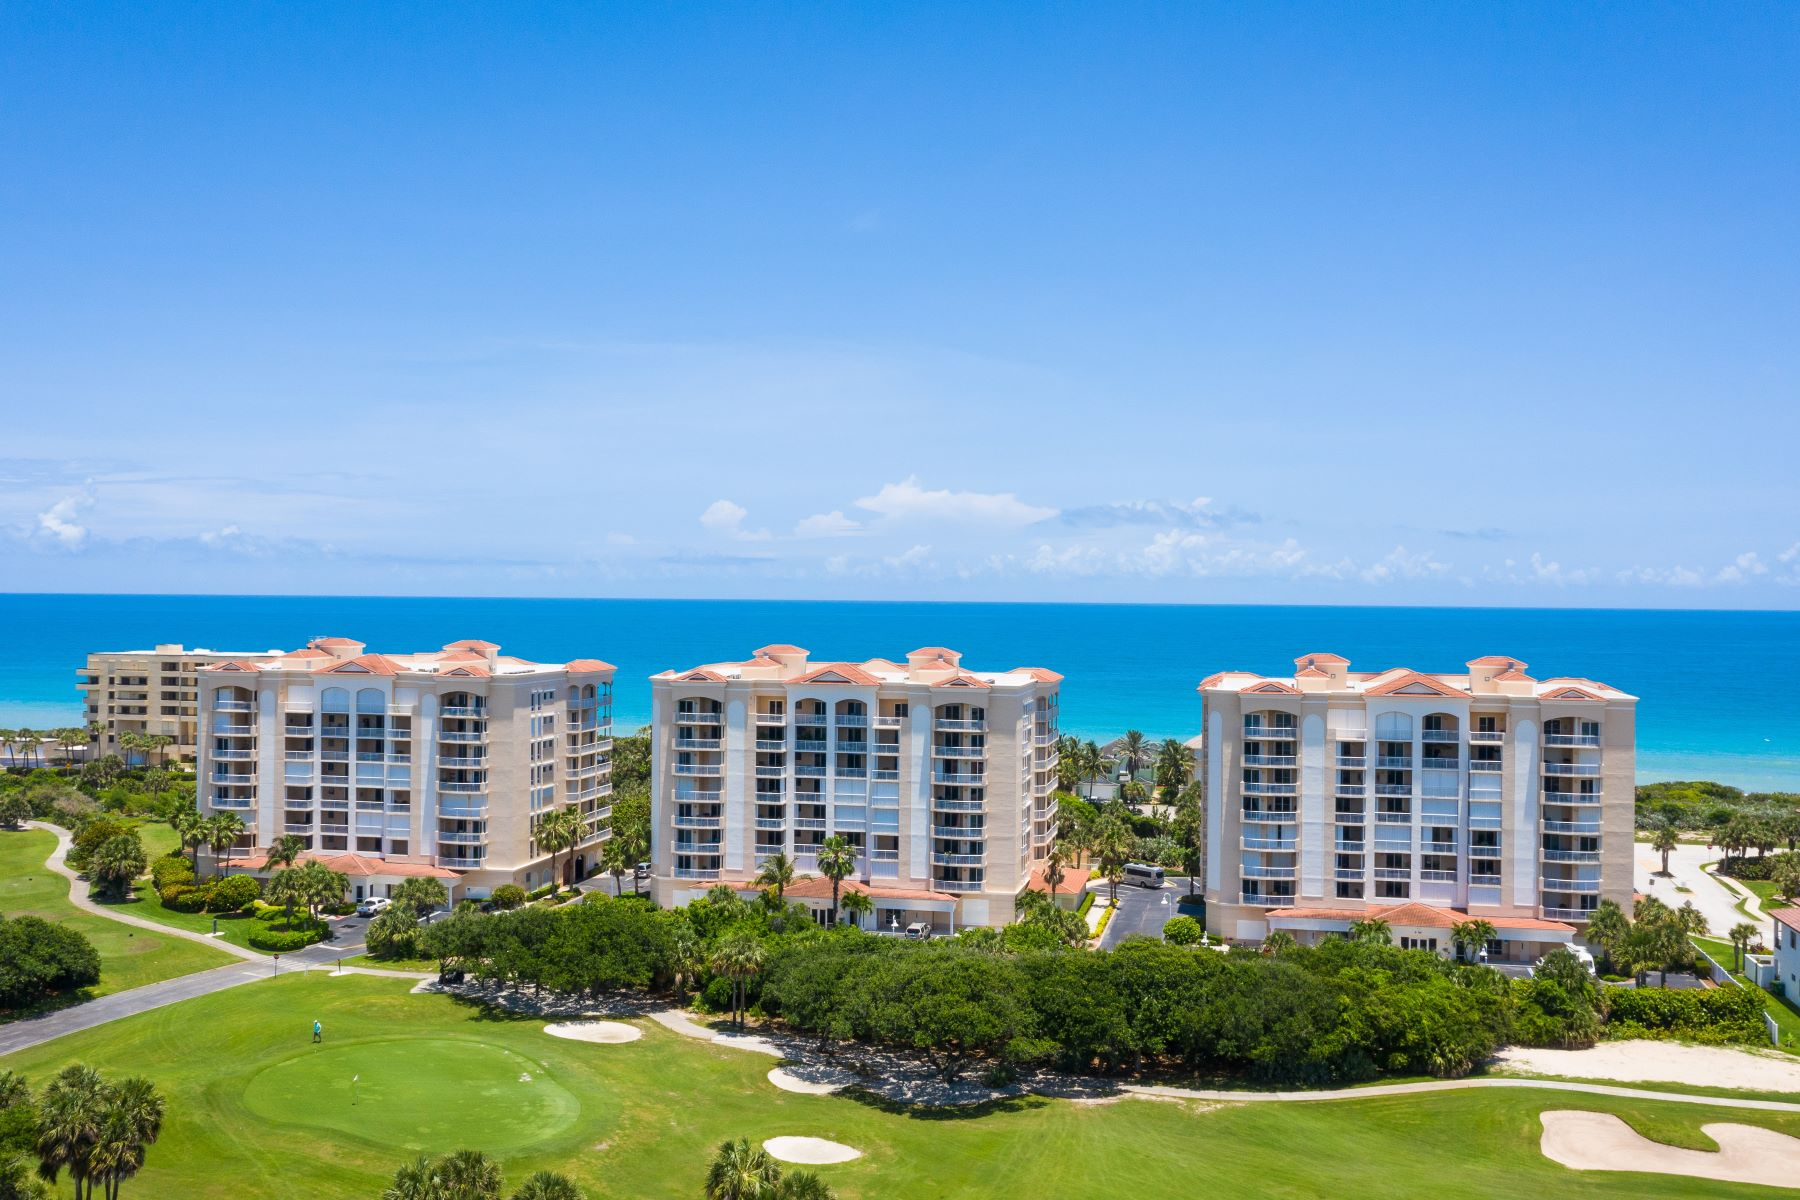 Condominiums for Sale at 110 Warsteiner Way, #302, Melbourne Beach, FL 110 Warsteiner Way, 302 Melbourne Beach, Florida 32951 United States